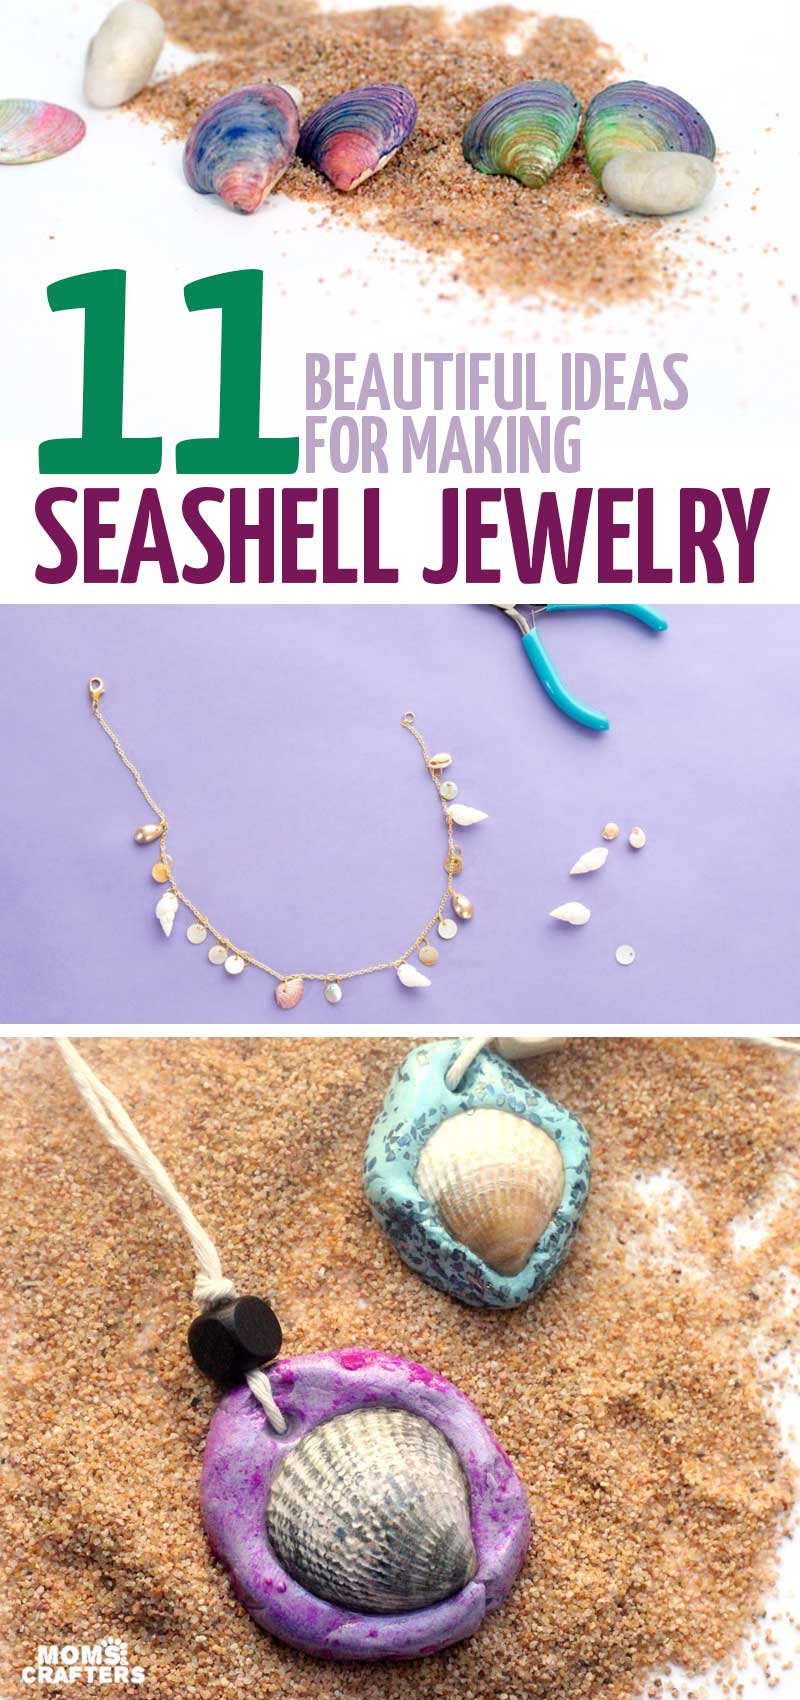 Click for the motherload of seashell jewelry DIY ideas! In this post you'll find DIY necklaces, earrings, and bracelets, all seashell crafts! These crafts are fun for summer and for teens.